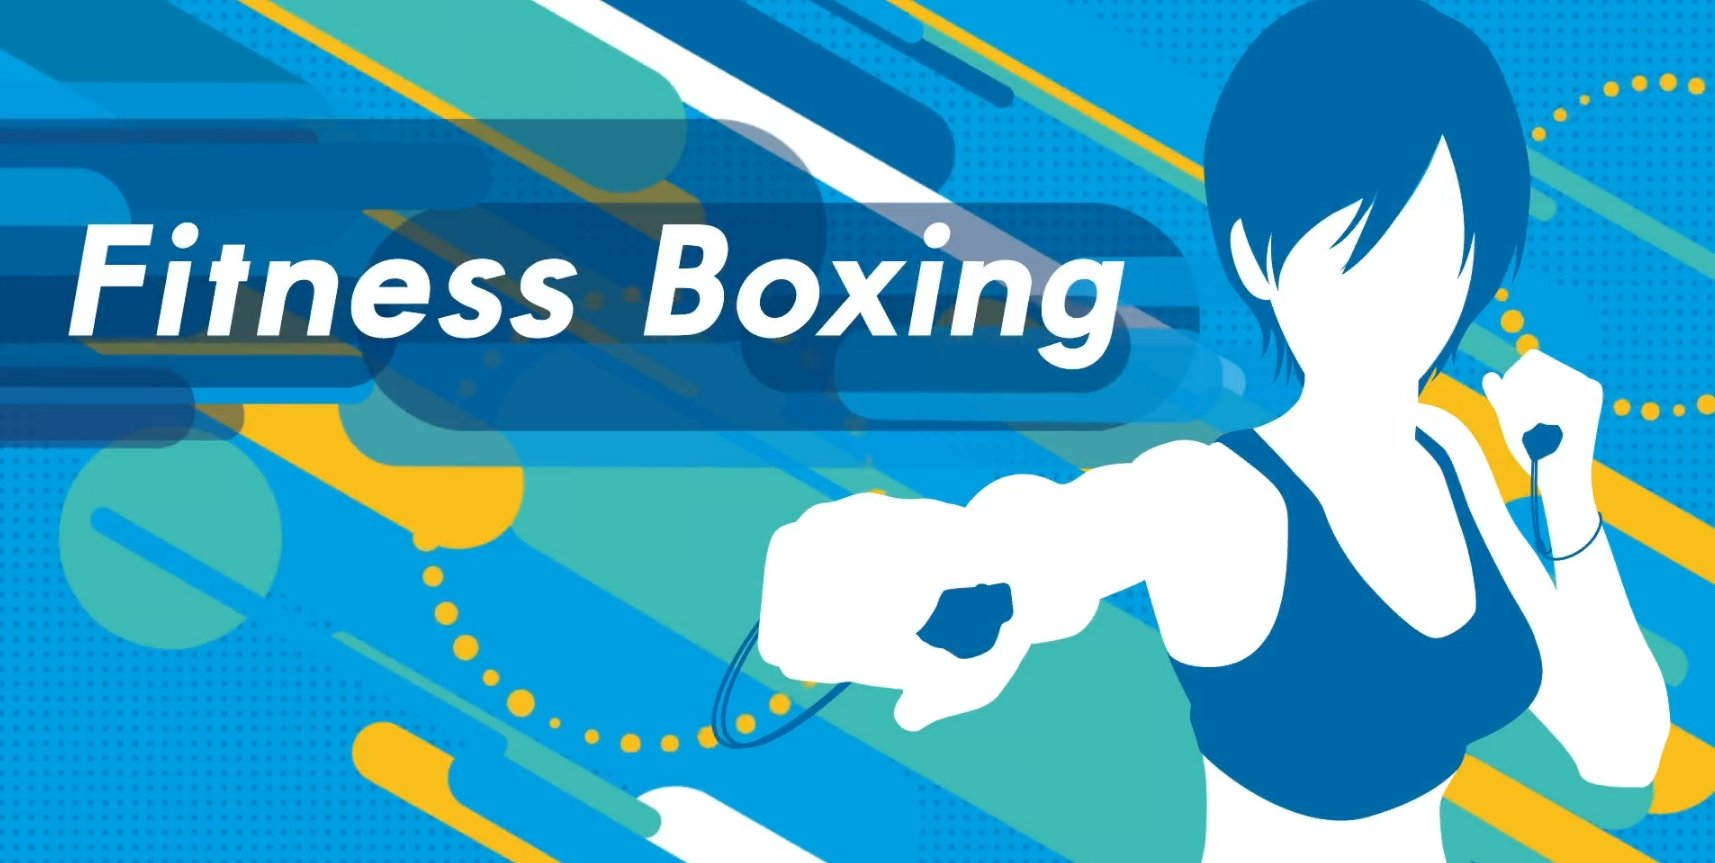 Nintendo Switch's Fitness Boxing Has Sold Over One Million Units Worldwide